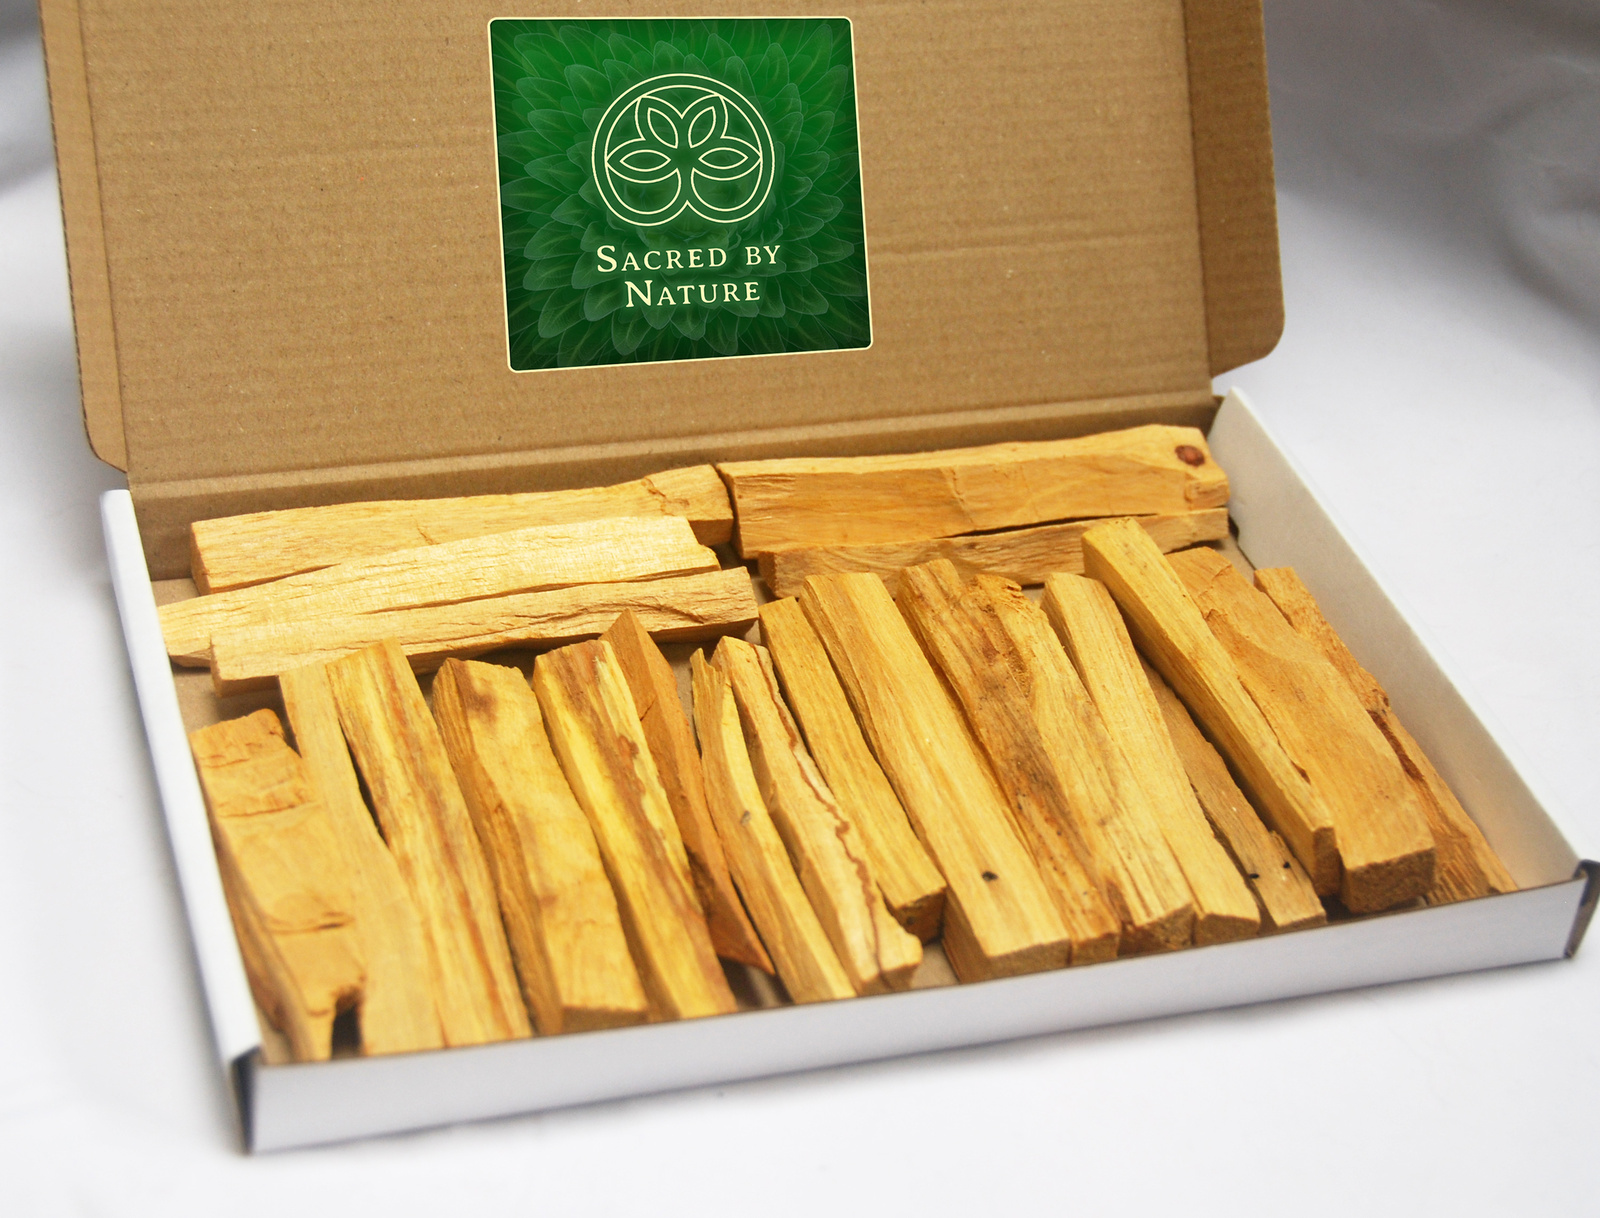 Primary image for Palo Santo Sticks 150g (+-20 sticks) Premium Grade ~ Sustainably Sourced Peru